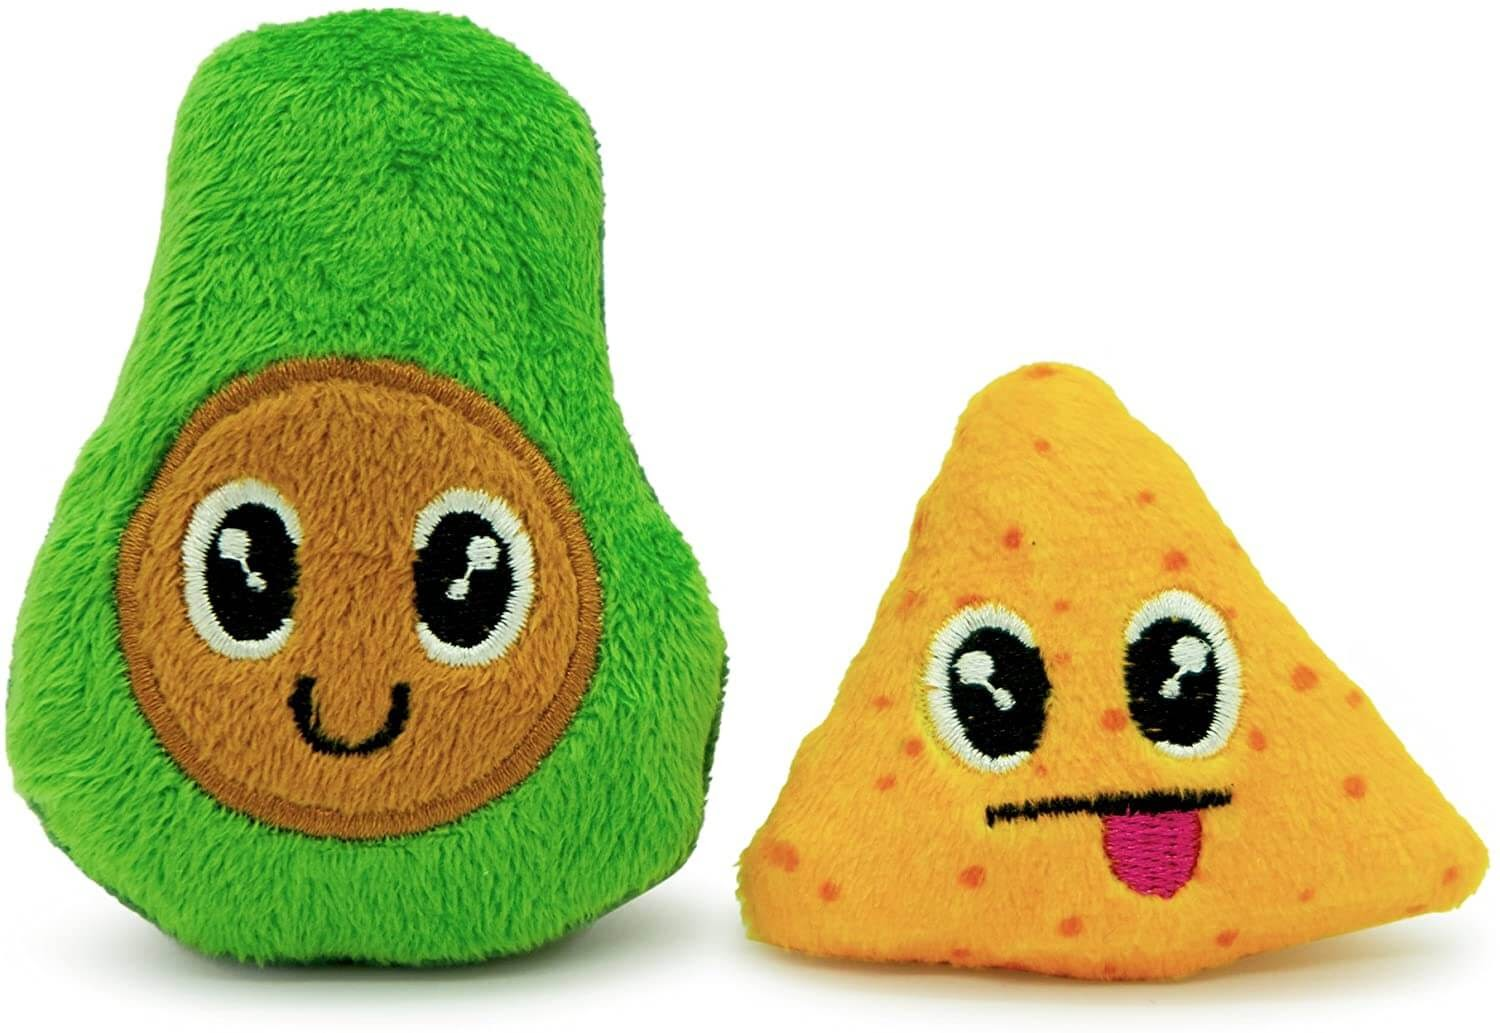 Pet Craft Supply Co. Silly avocado and chip toys